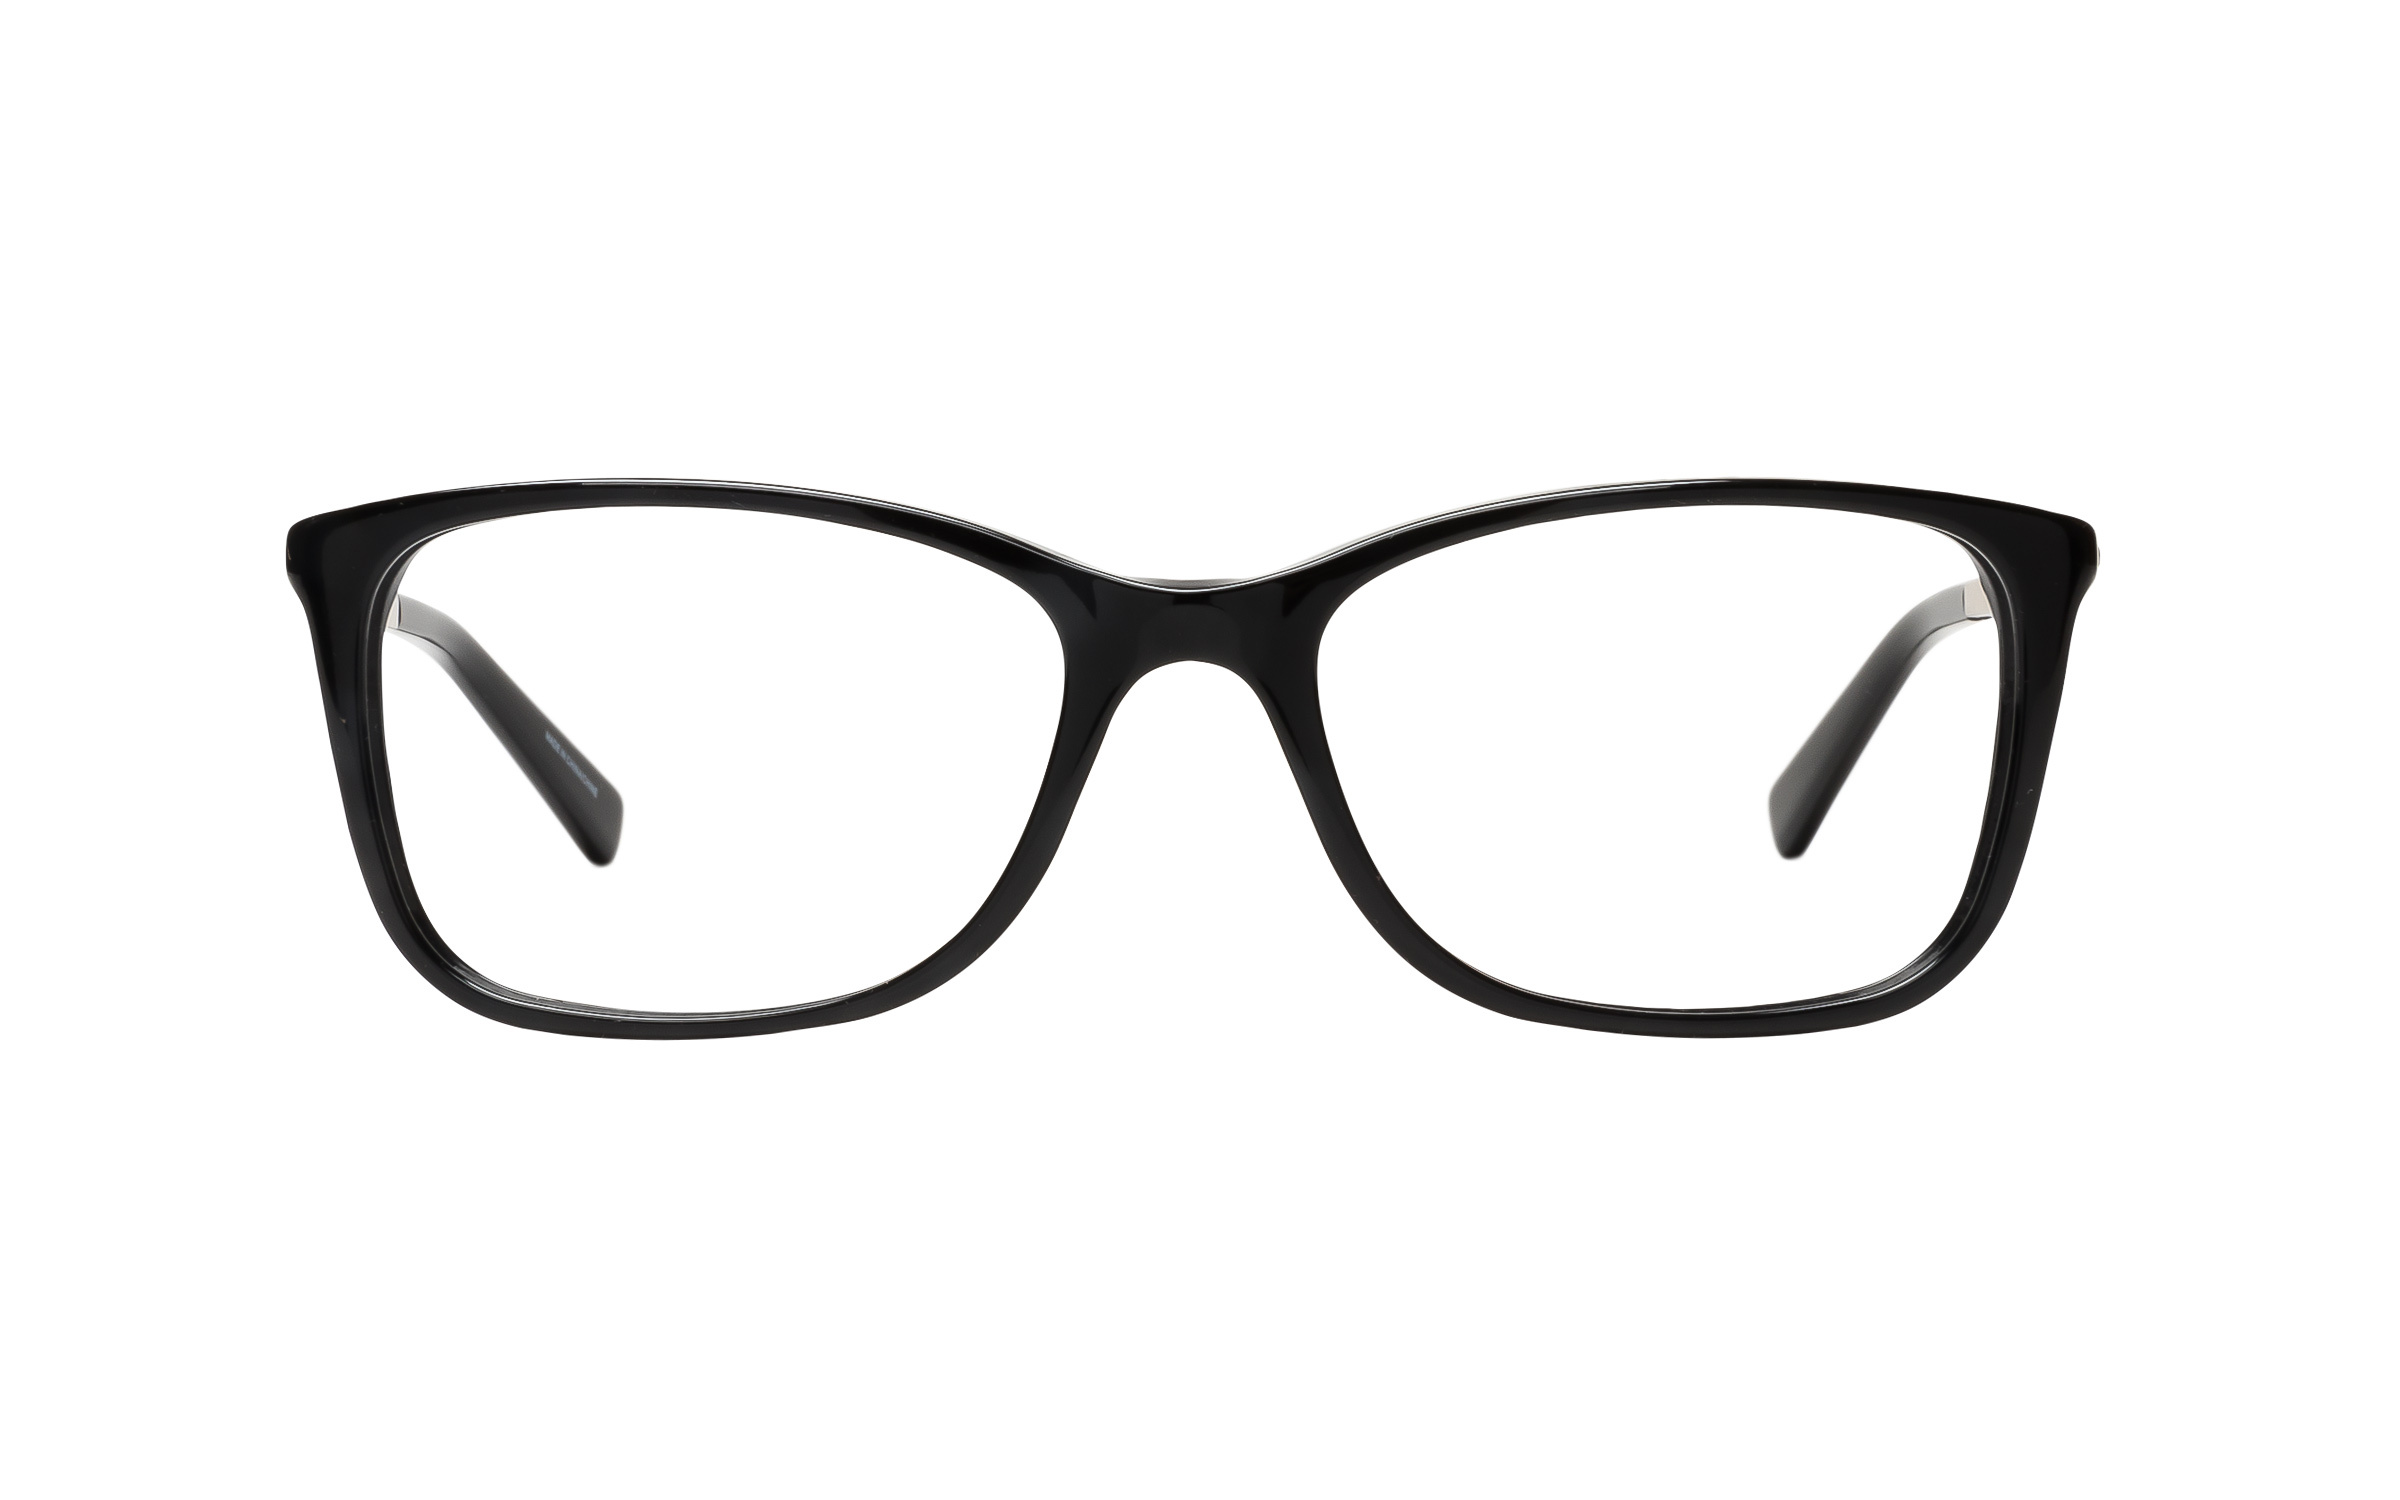 Michael Kors MK4016 3298 (53) Eyeglasses and Frame in Black | Plastic/Metal - Online